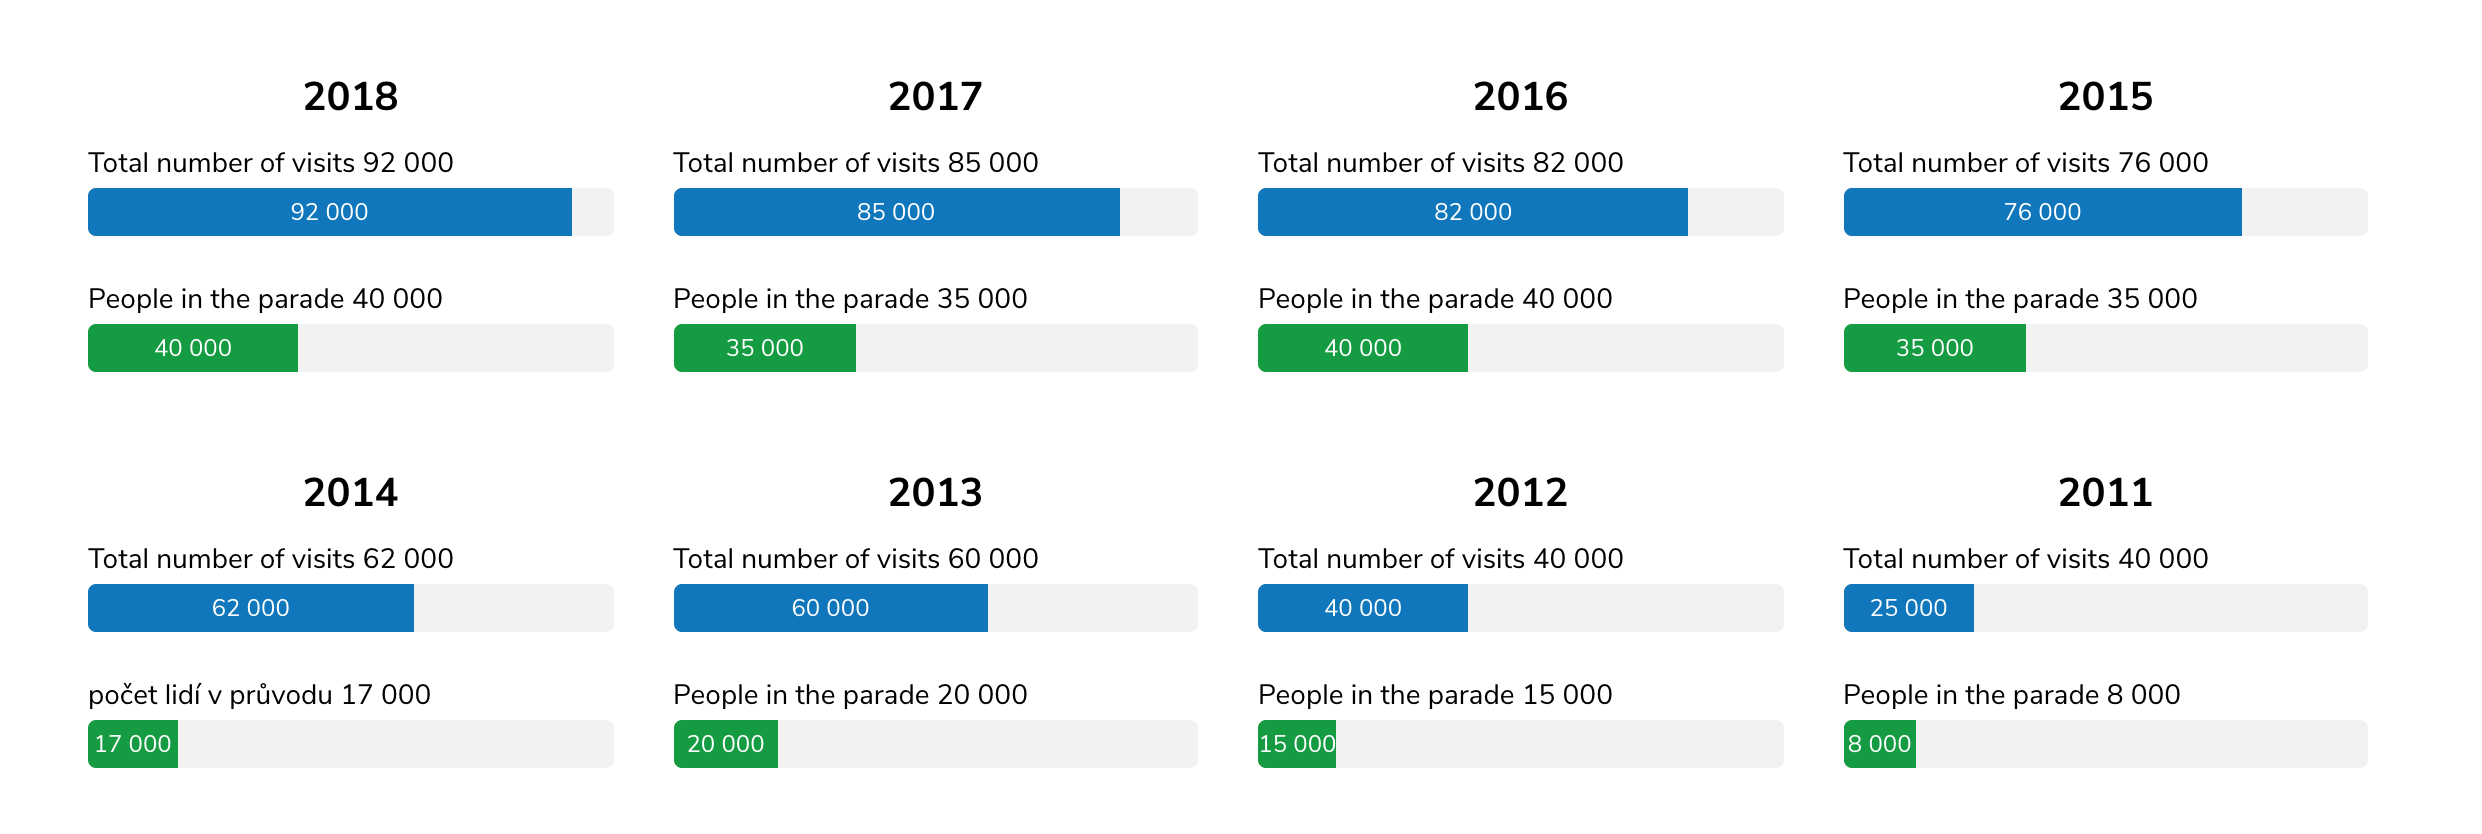 How many people attended to Prague Pride 2018, 2017, 2016, 2015